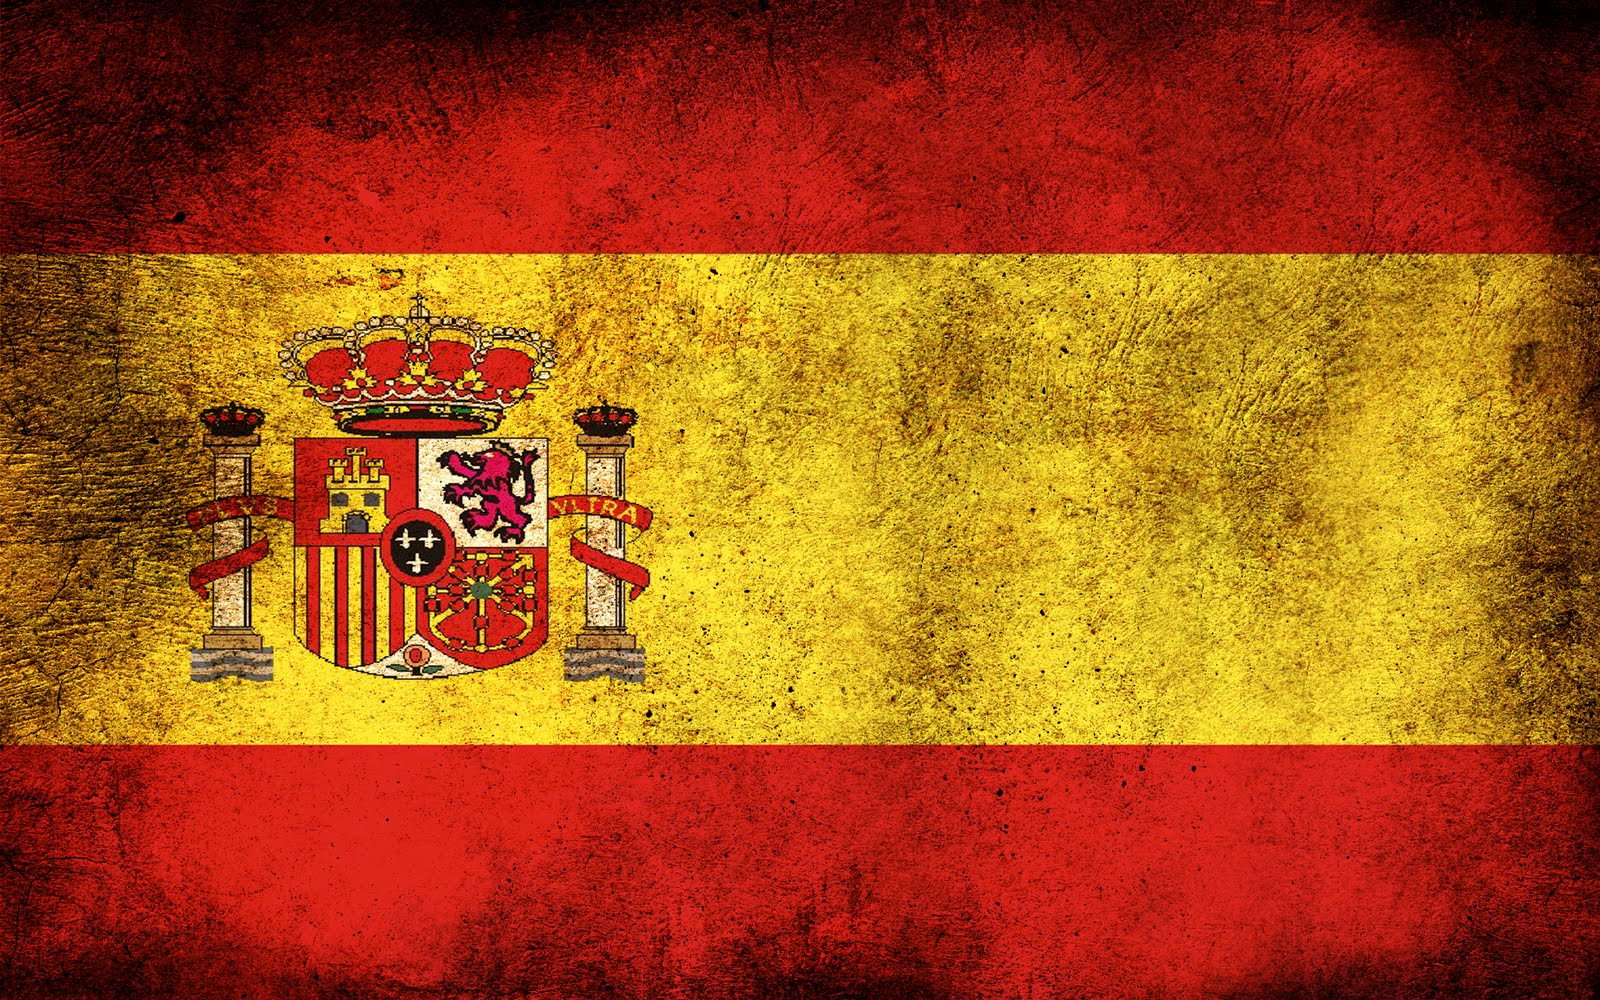 http://4.bp.blogspot.com/-Tgmu7Irn2pI/TflJpr5SIlI/AAAAAAAAQz4/MOmllukEXgo/s1600/spain-flag-backgrounds-wallpapers.jpg